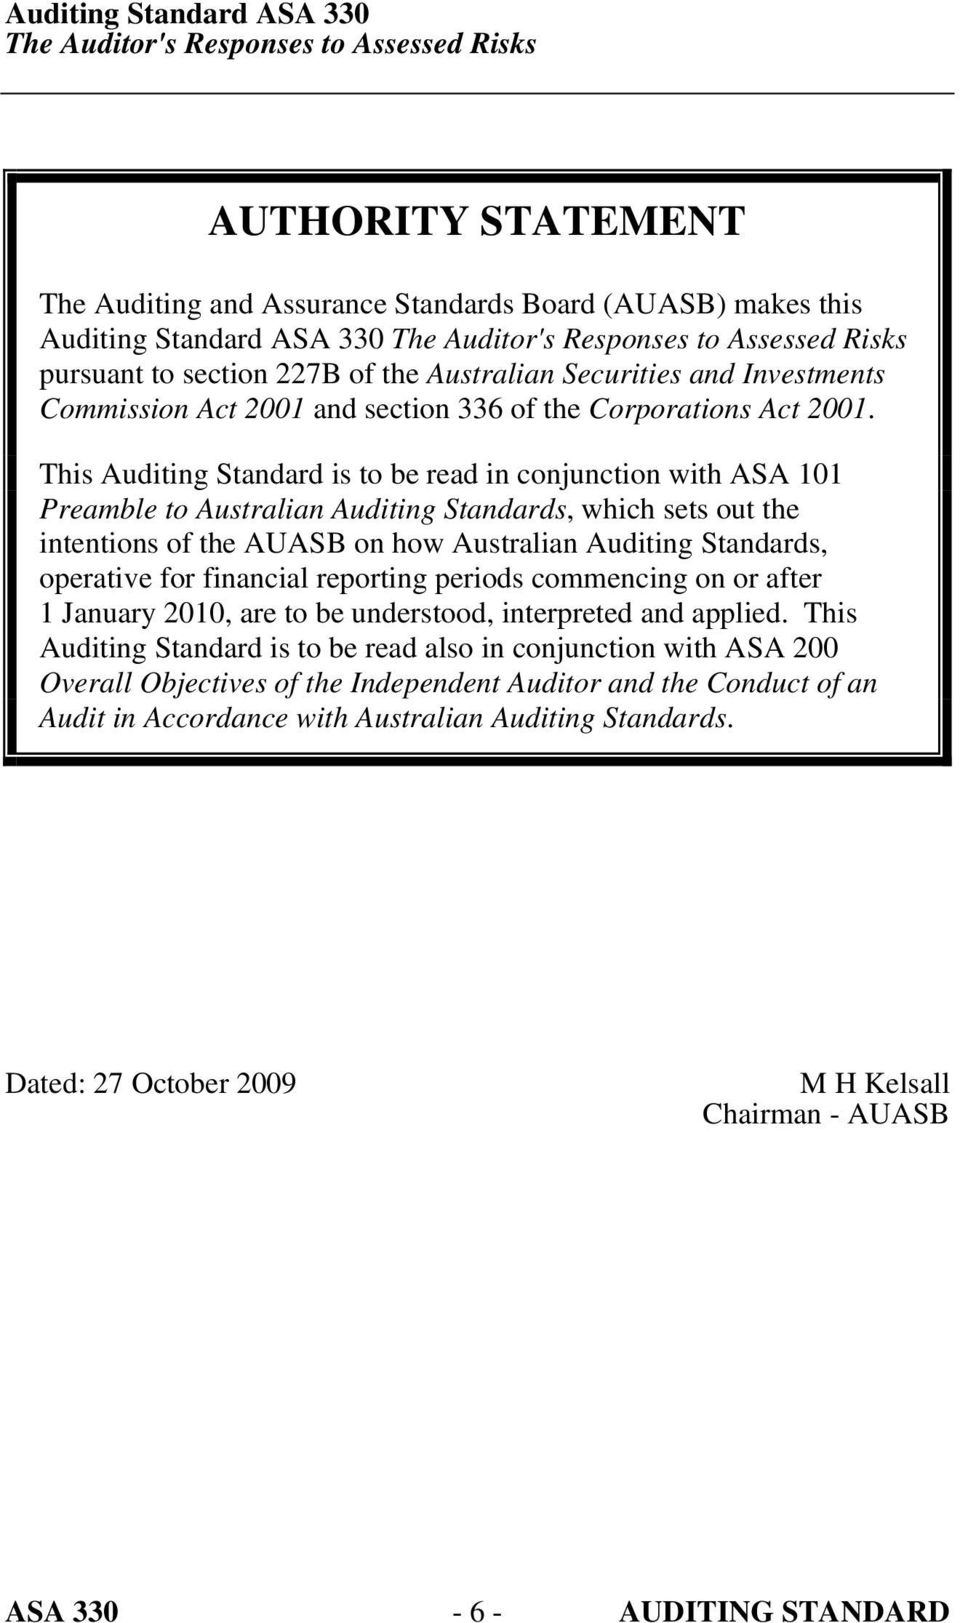 This Auditing Standard is to be read in conjunction with ASA 101 Preamble to Australian Auditing Standards, which sets out the intentions of the AUASB on how Australian Auditing Standards, operative